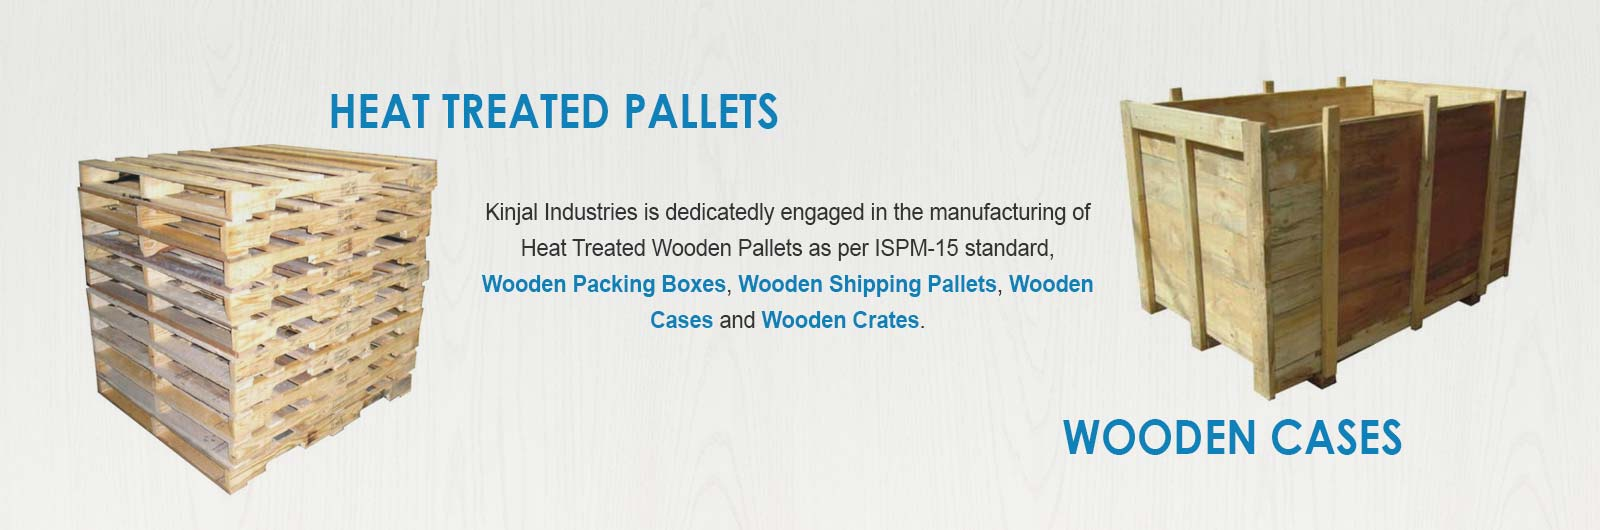 Heat Treated Pallets, Wooden Cases Manufacturers in Somnath